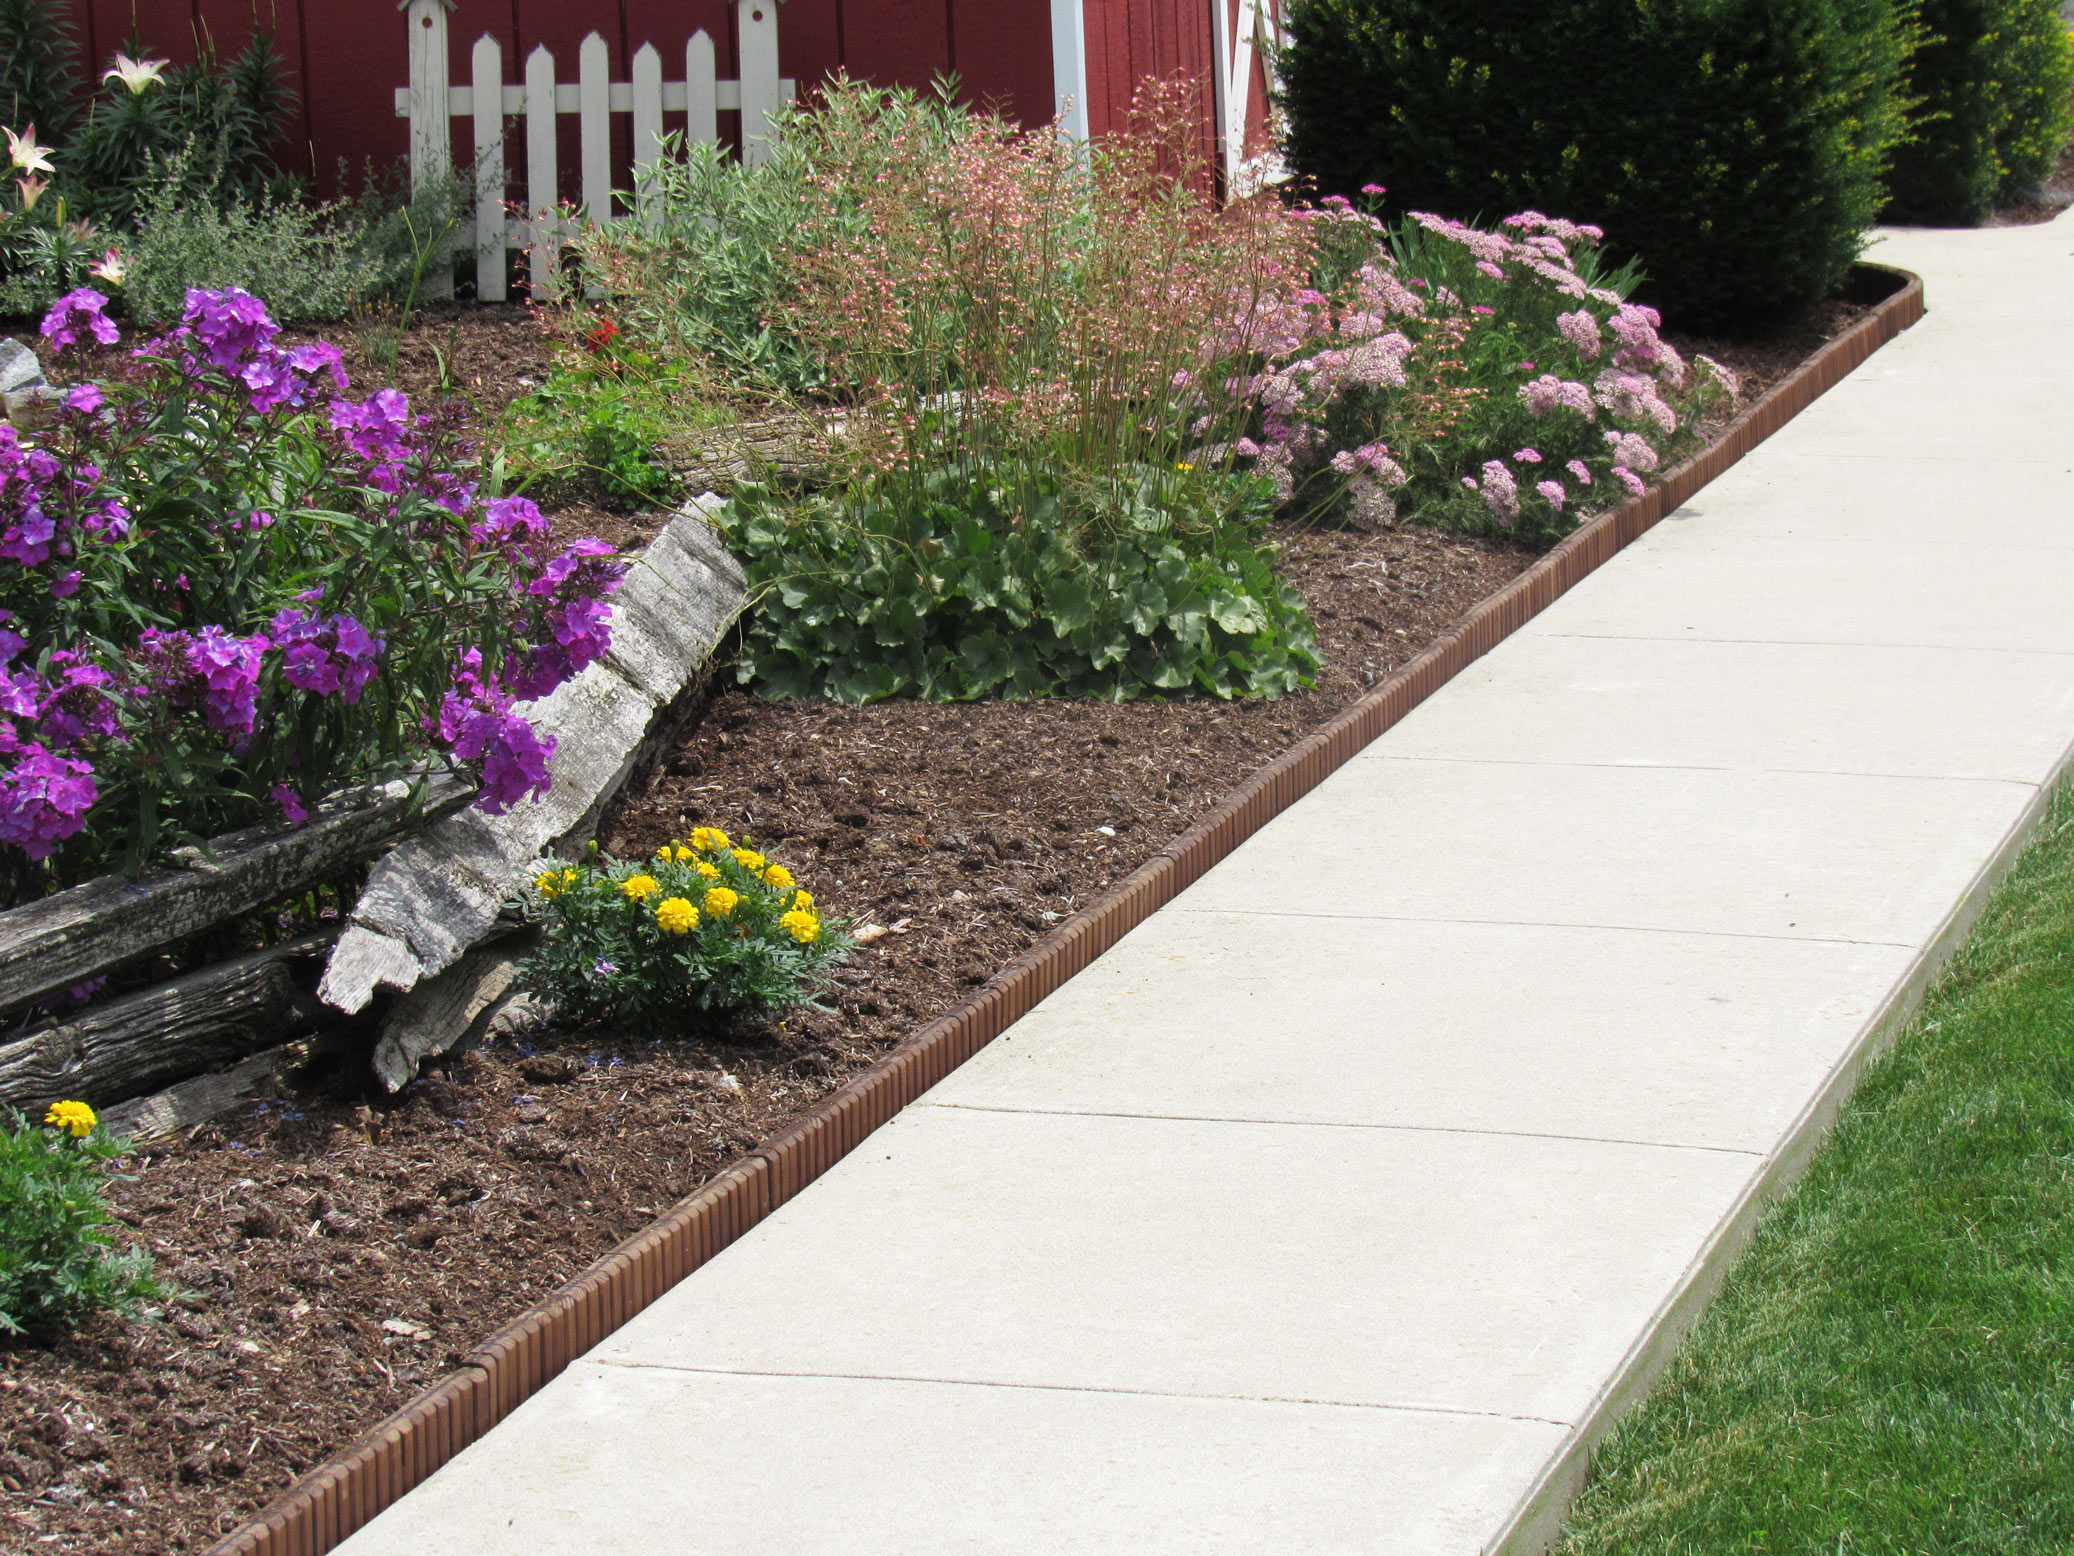 Garden Borders and Edging Ideas - Top 3 Ideas - Eco-Green ... on Backyard Border Ideas id=91965